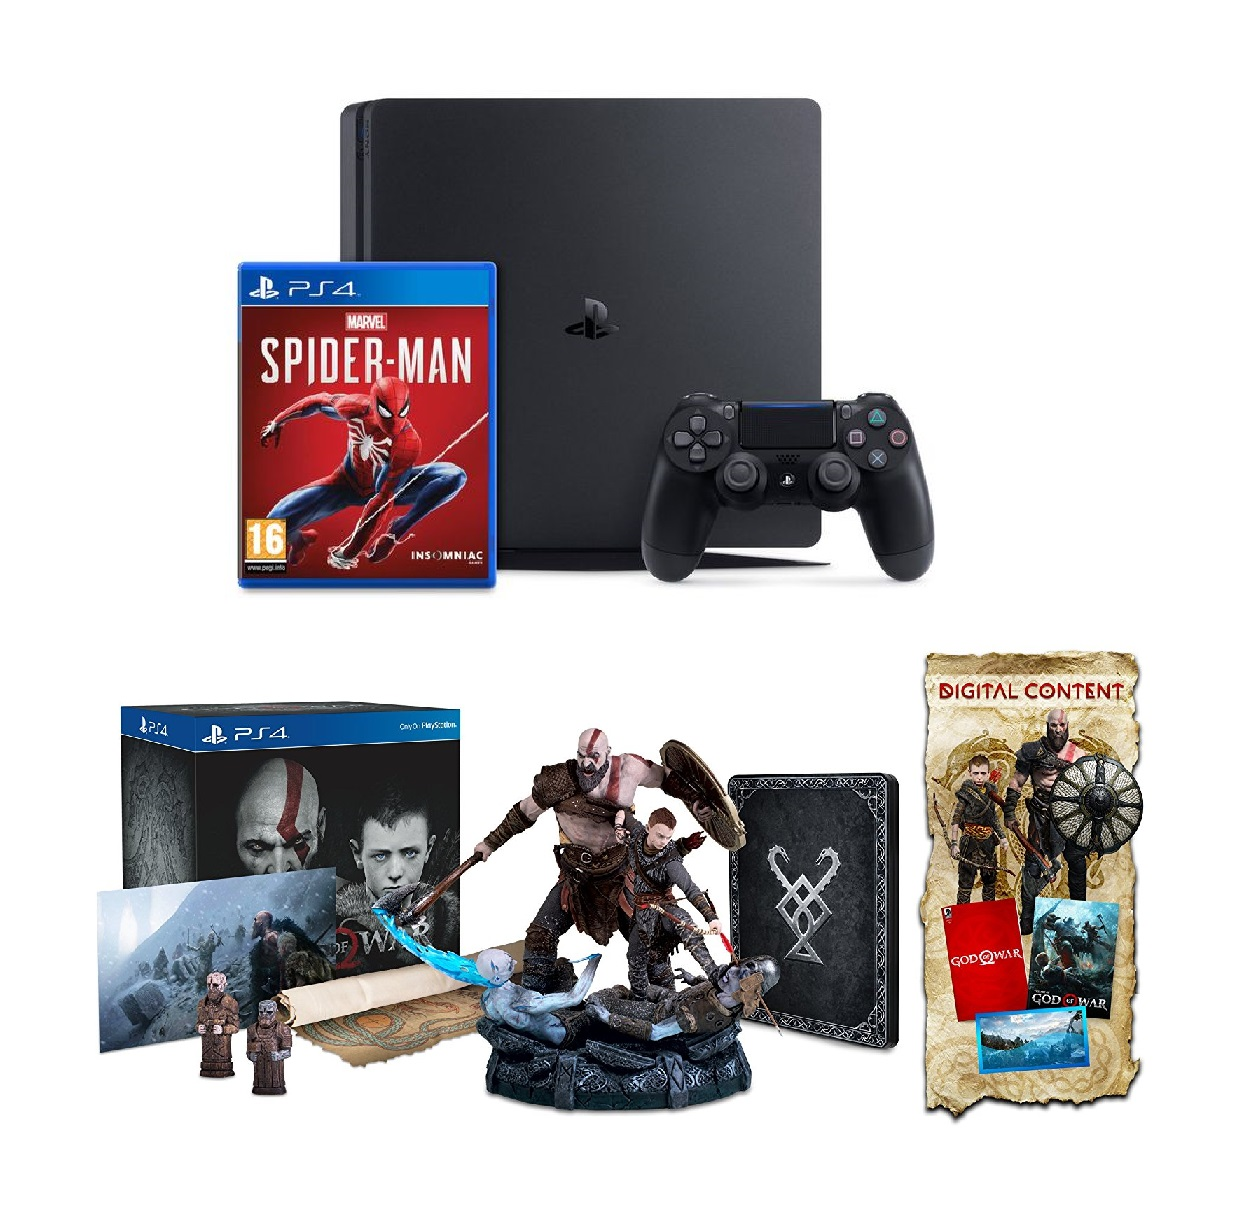 ps4-slim-500g-spider-man-bo-tuong-gow-collector-edition